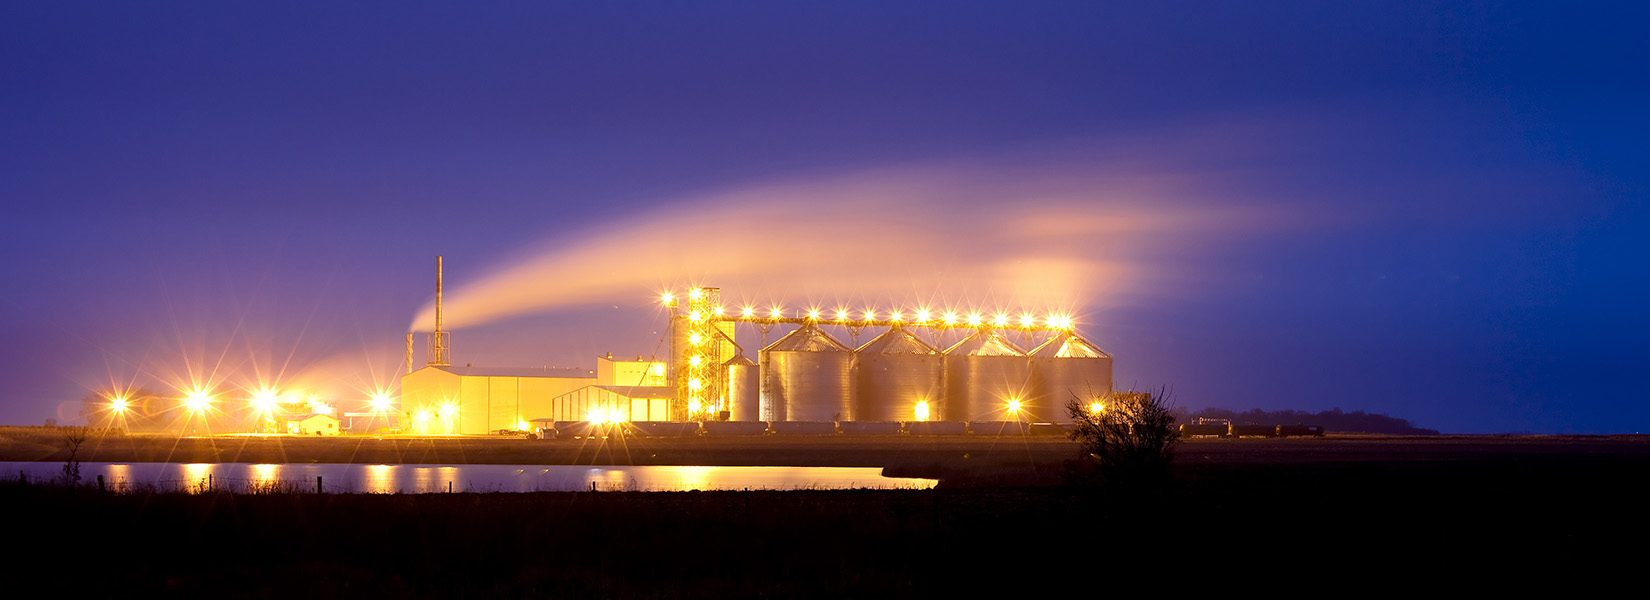 plant producing ethanol from corn